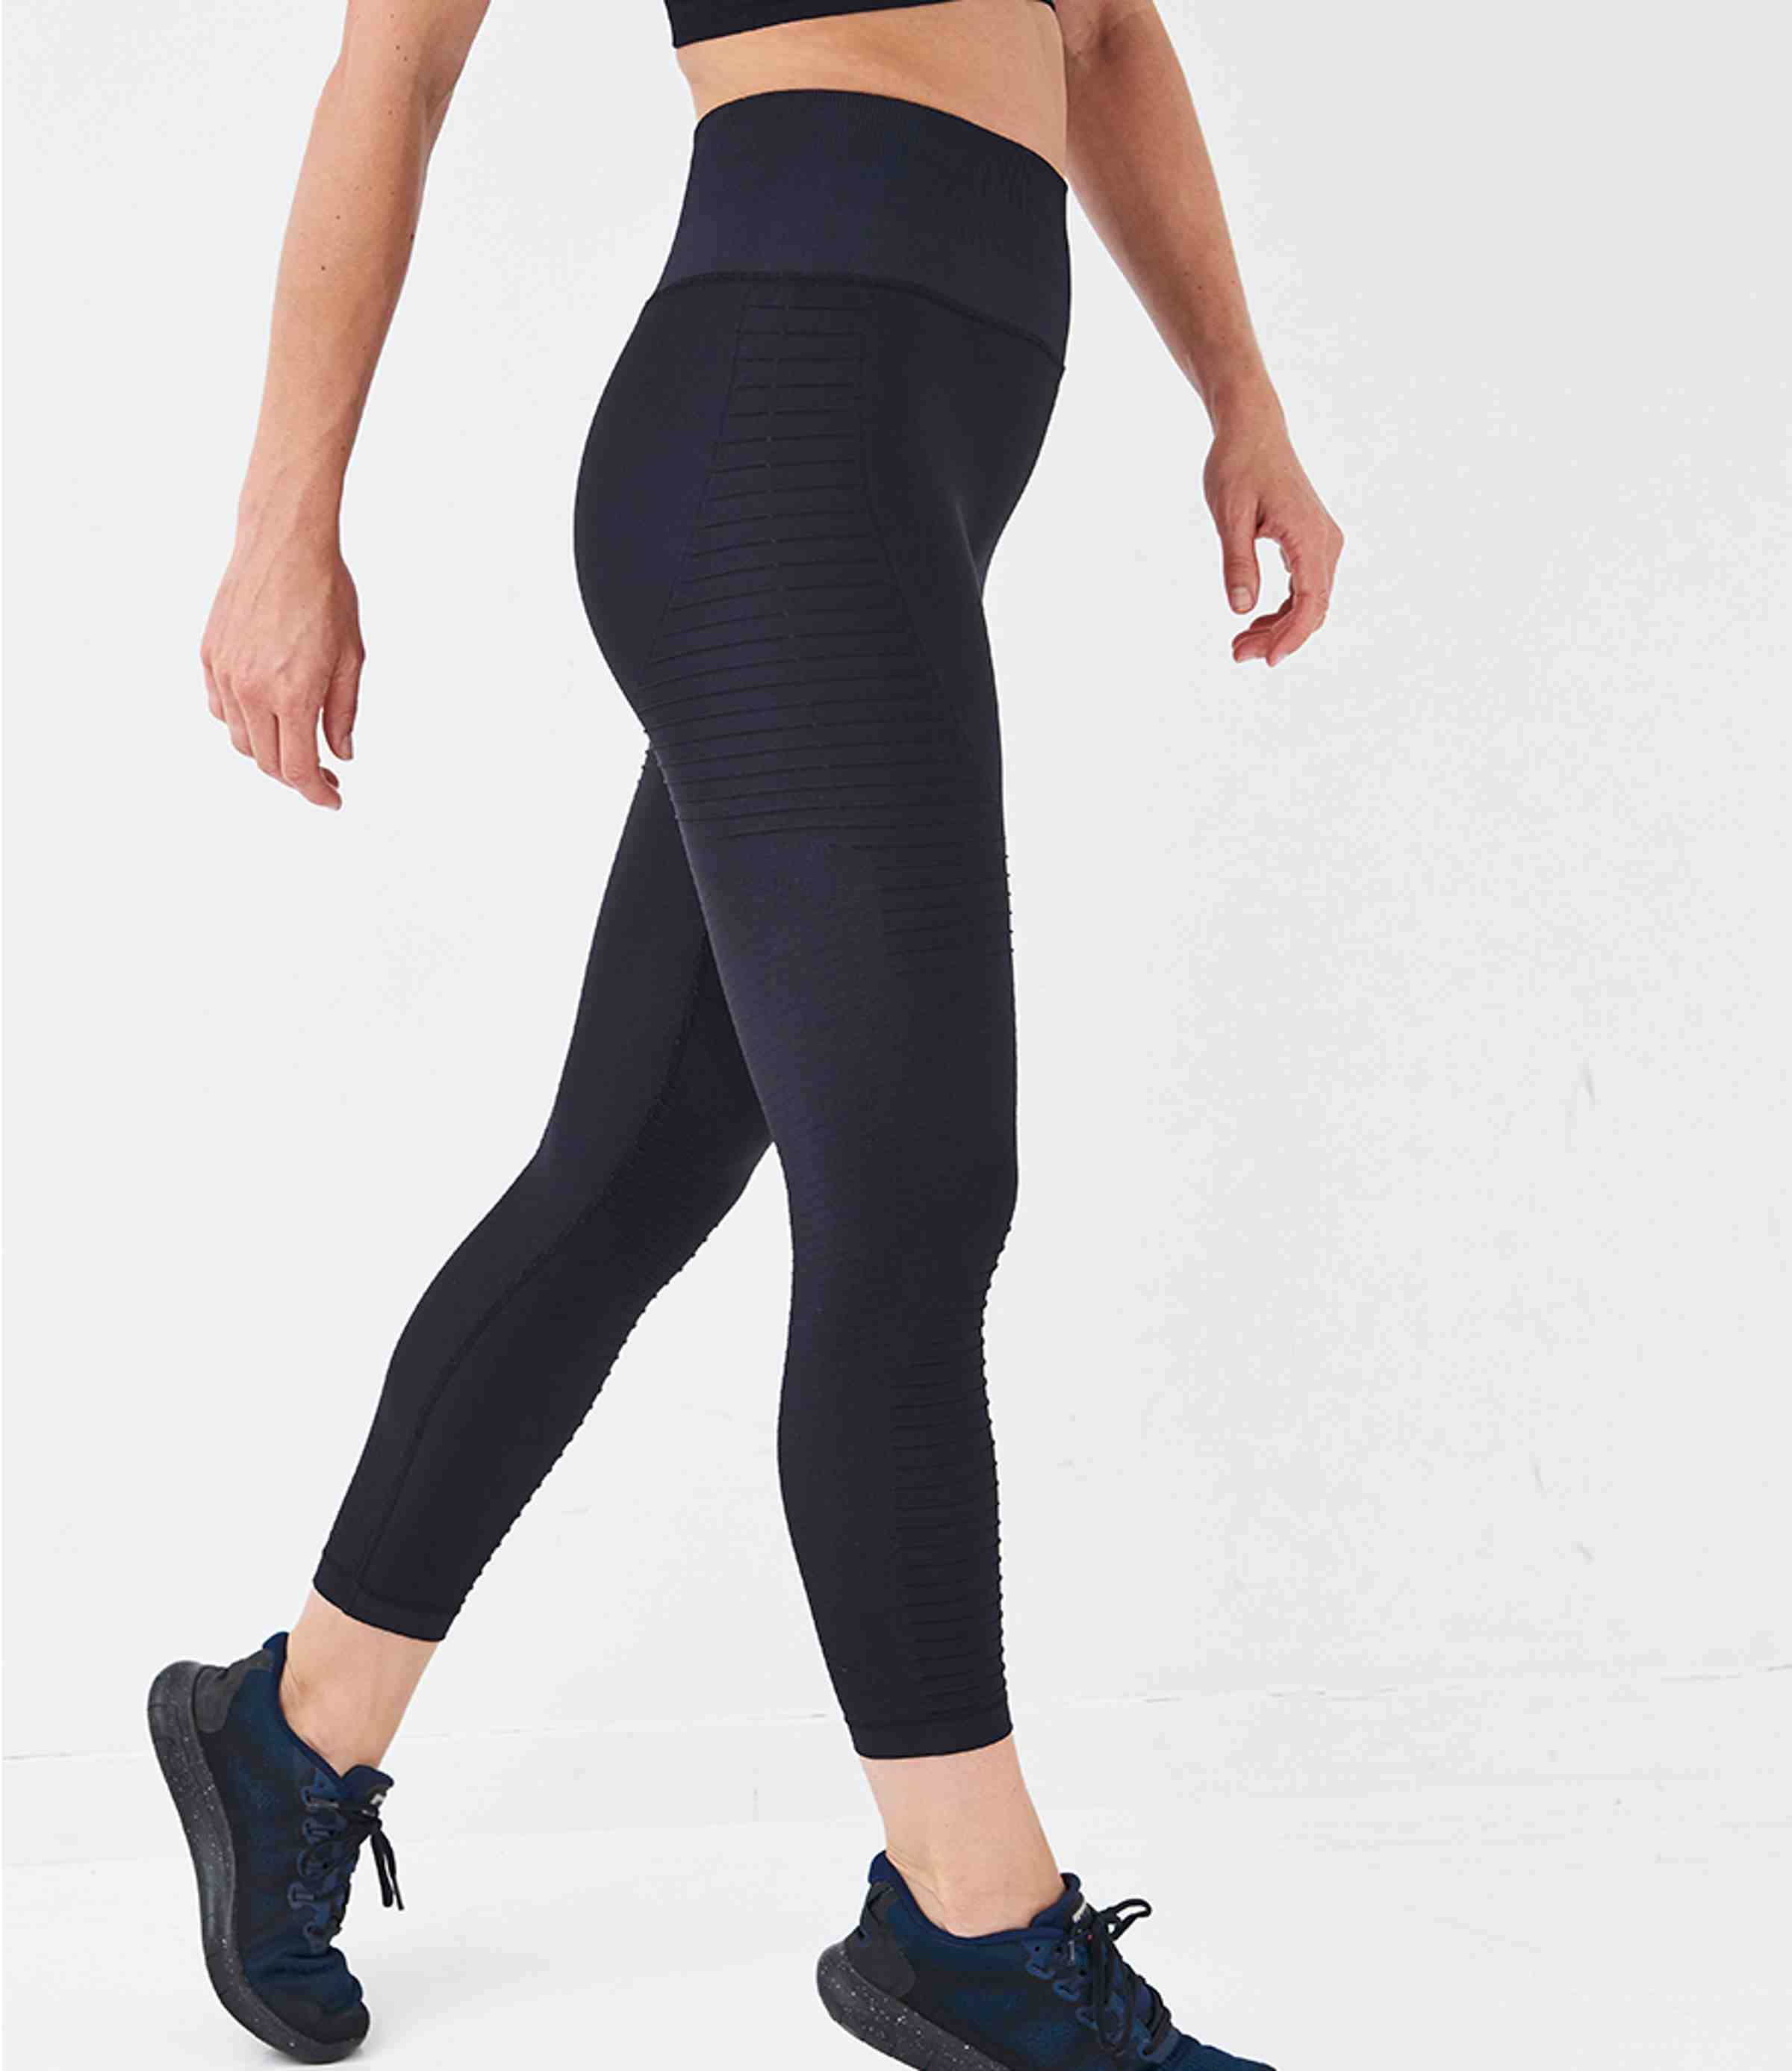 Womens Fitness Seamless Leggings (3 Colour Options)